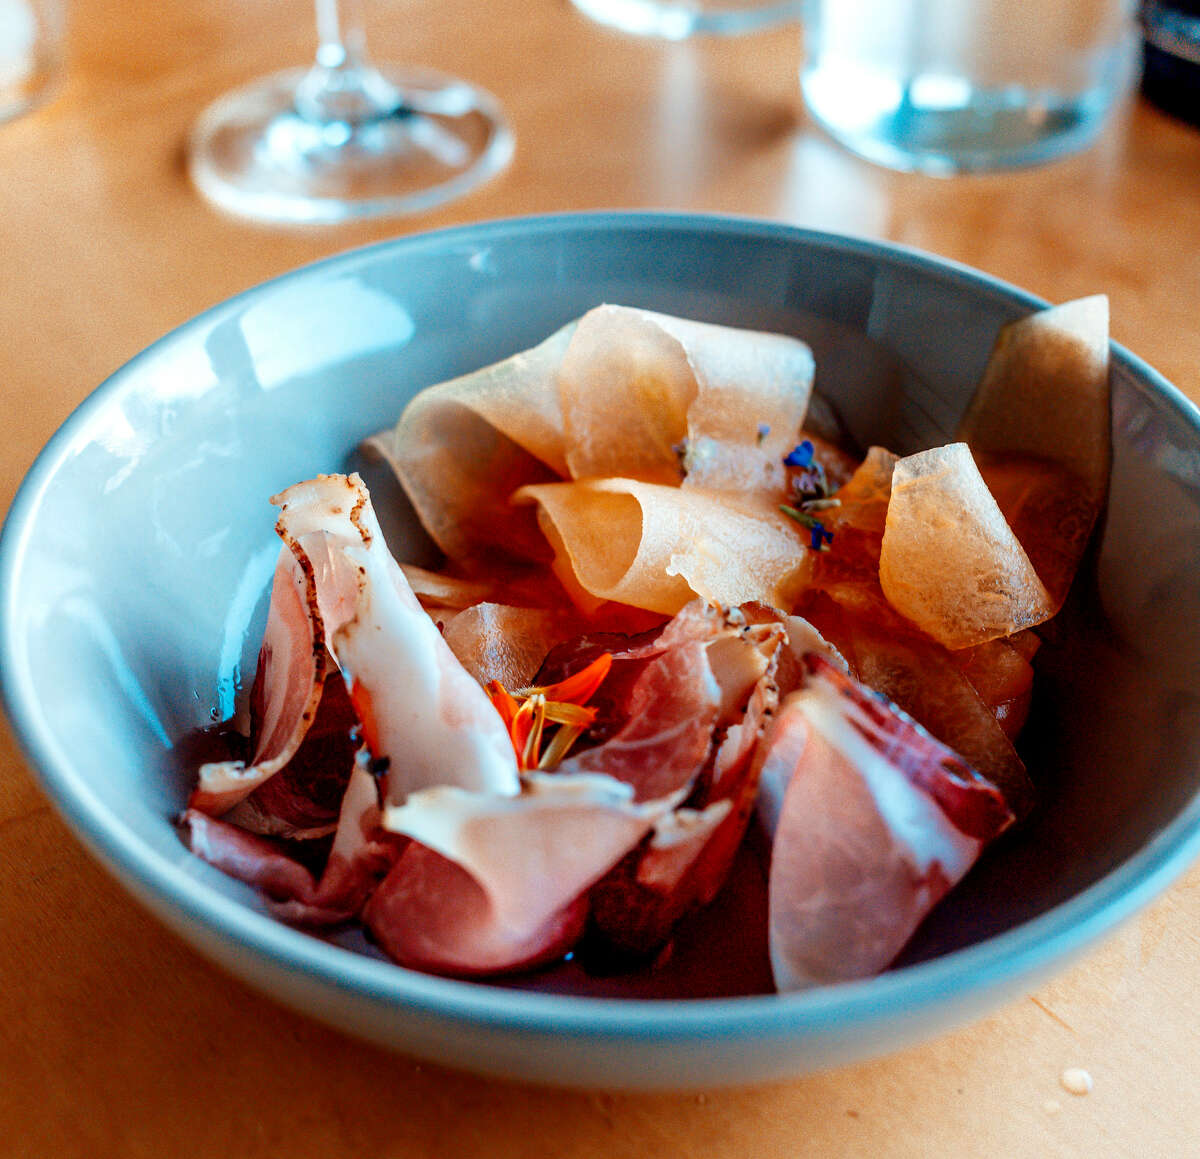 Ribbons of melon with shaved, house-cured speck at The Dutchess hotel. (Photo by Konrad Odhiambo/For the Times Union.)